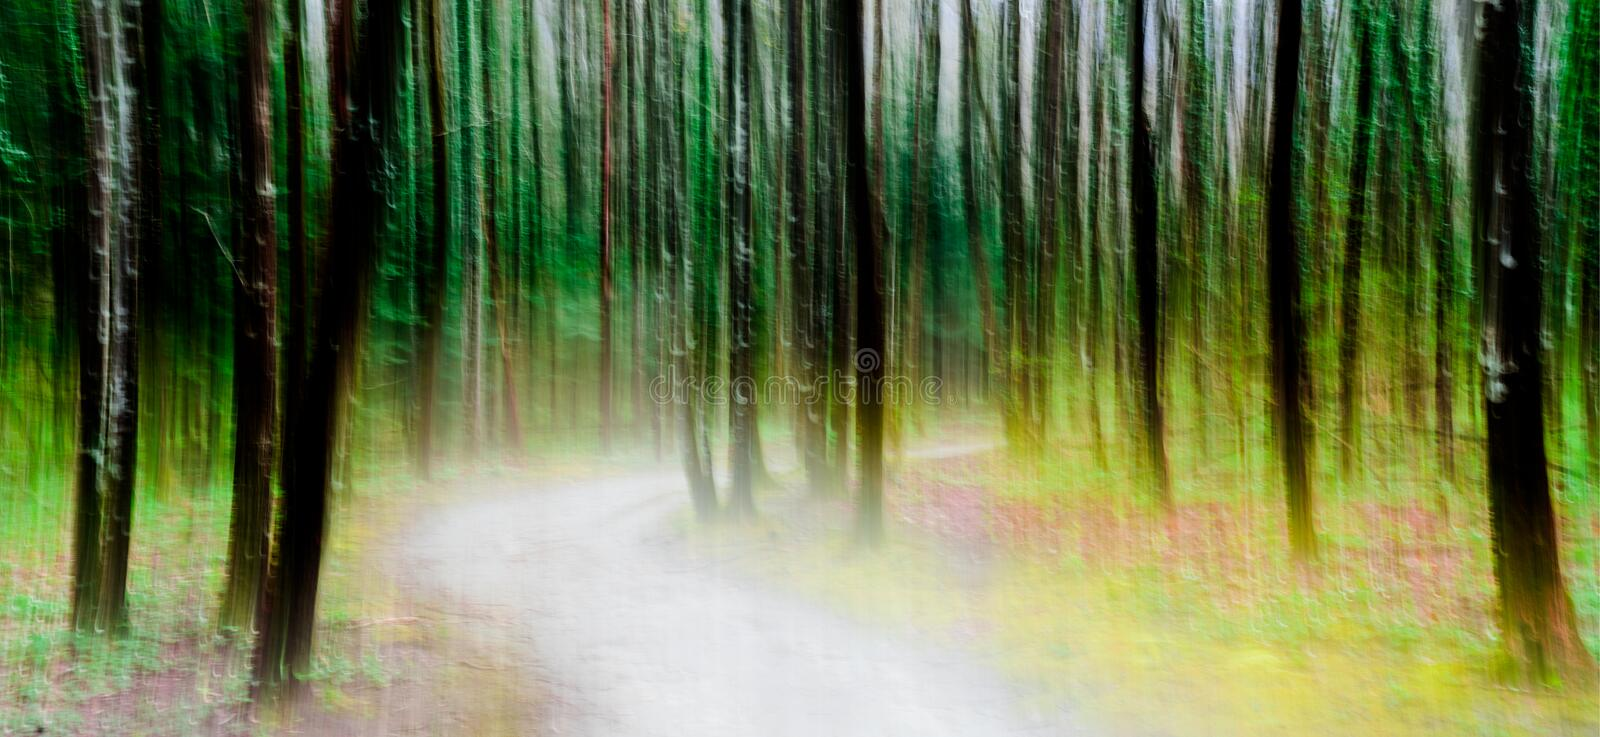 Light illuminated path through a lush green forest abstract panning style. A light illuminated path through a lush green forest abstract panning style royalty free stock photography